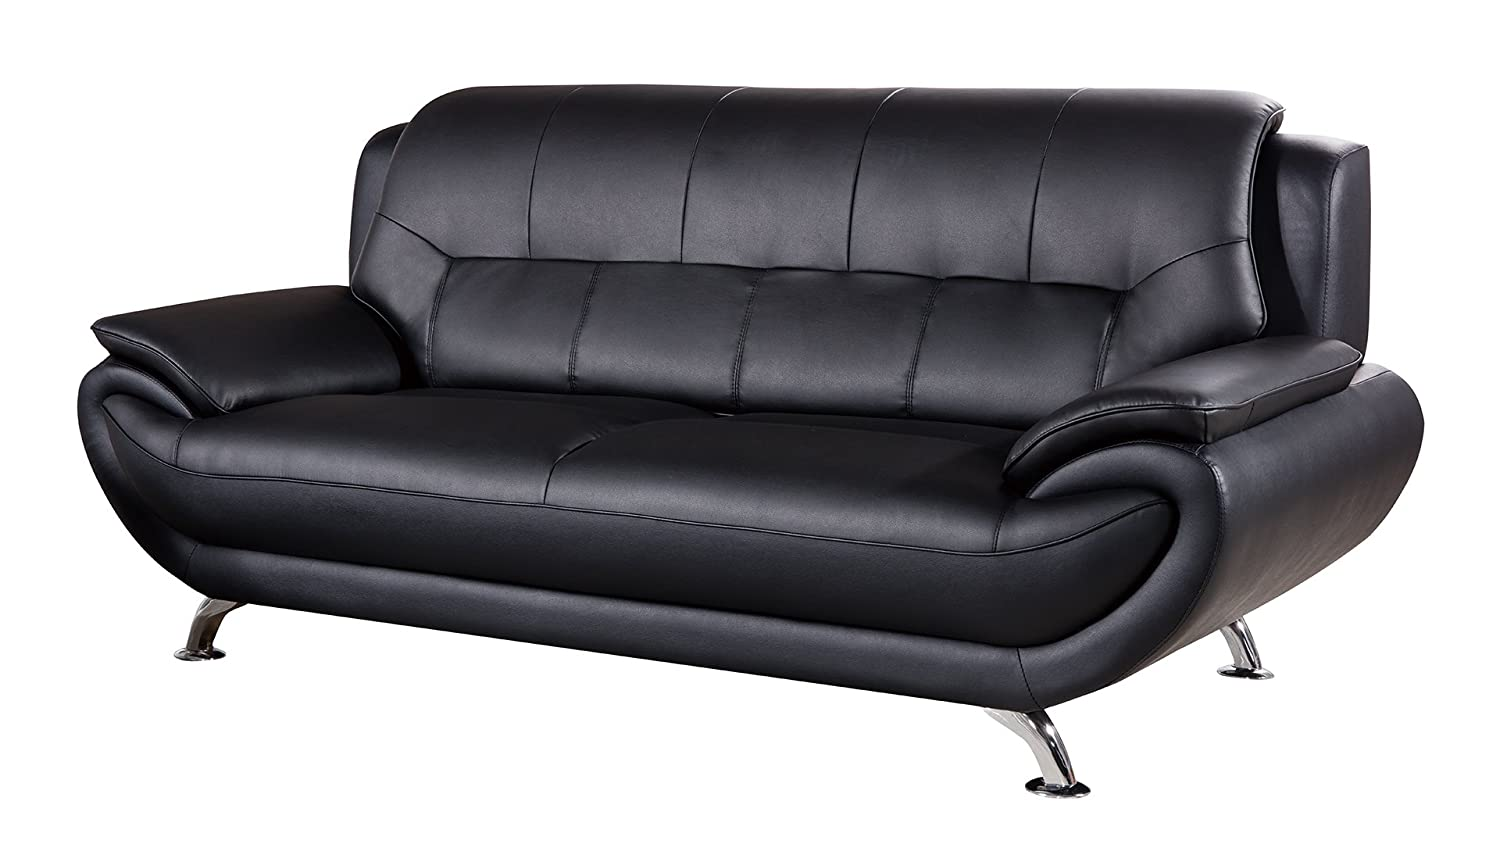 American Eagle Furniture AE208-BK-CHR Highland Bonded Leather Living Room Sofa Chair with Pillow Top Armrests, Black